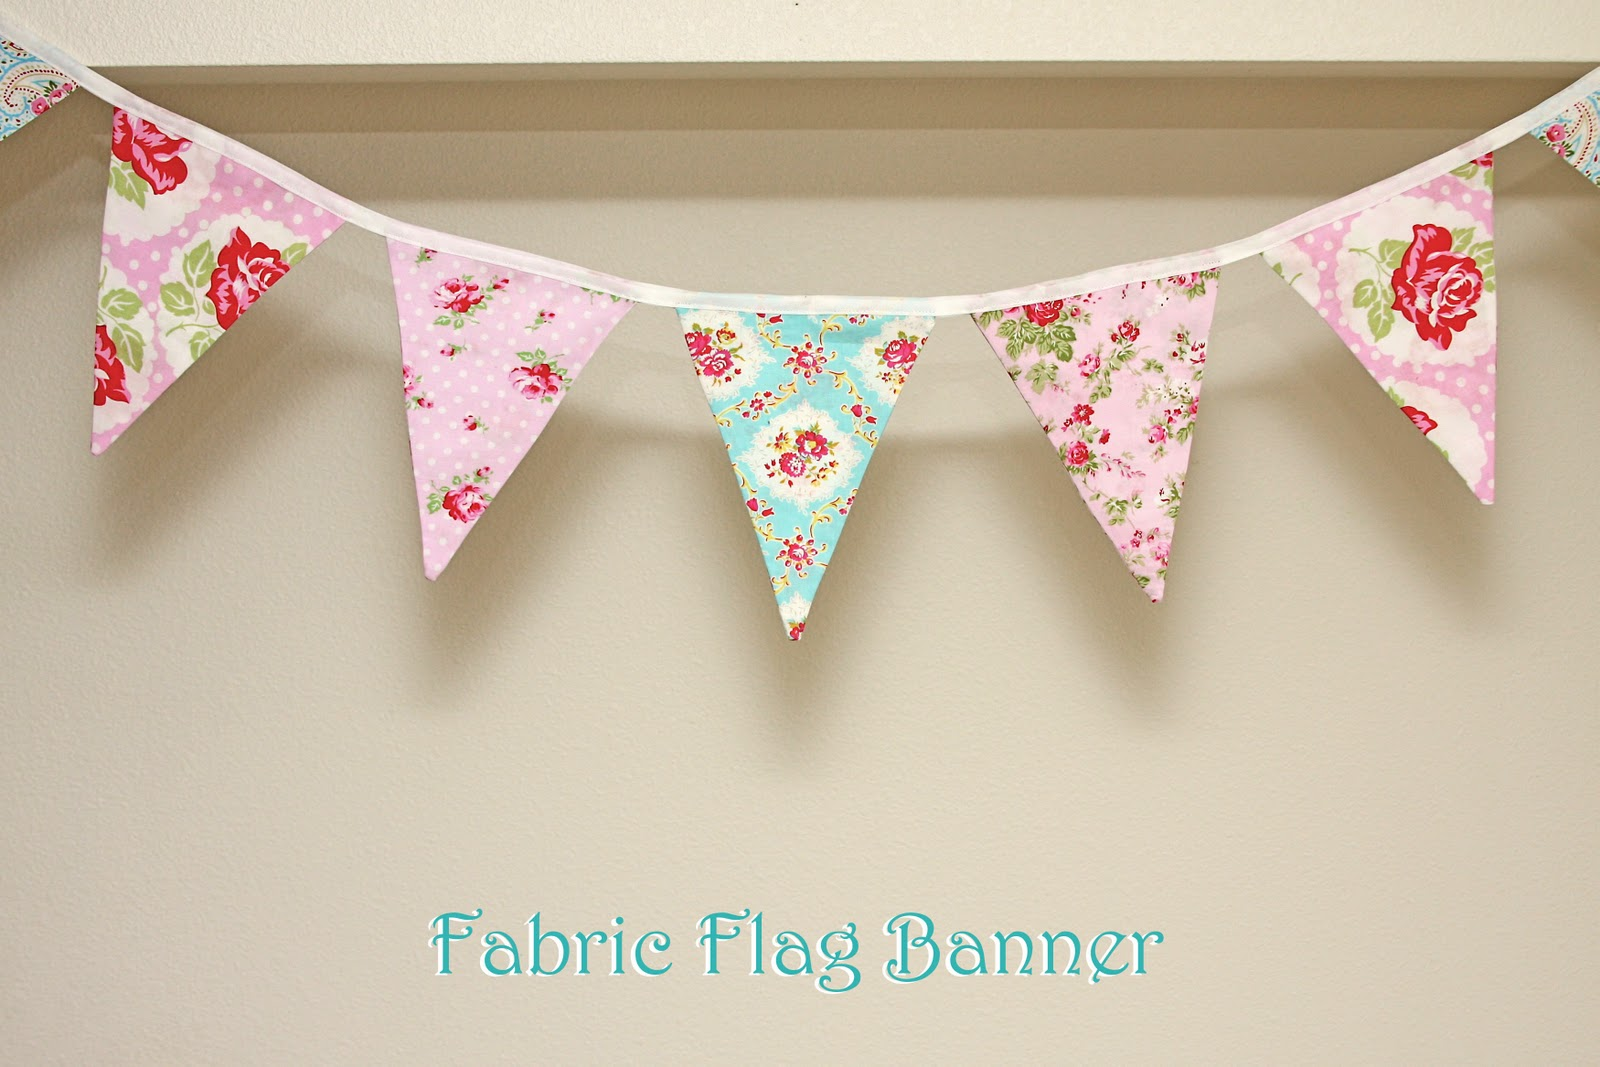 how to make a flag banner out of fabric